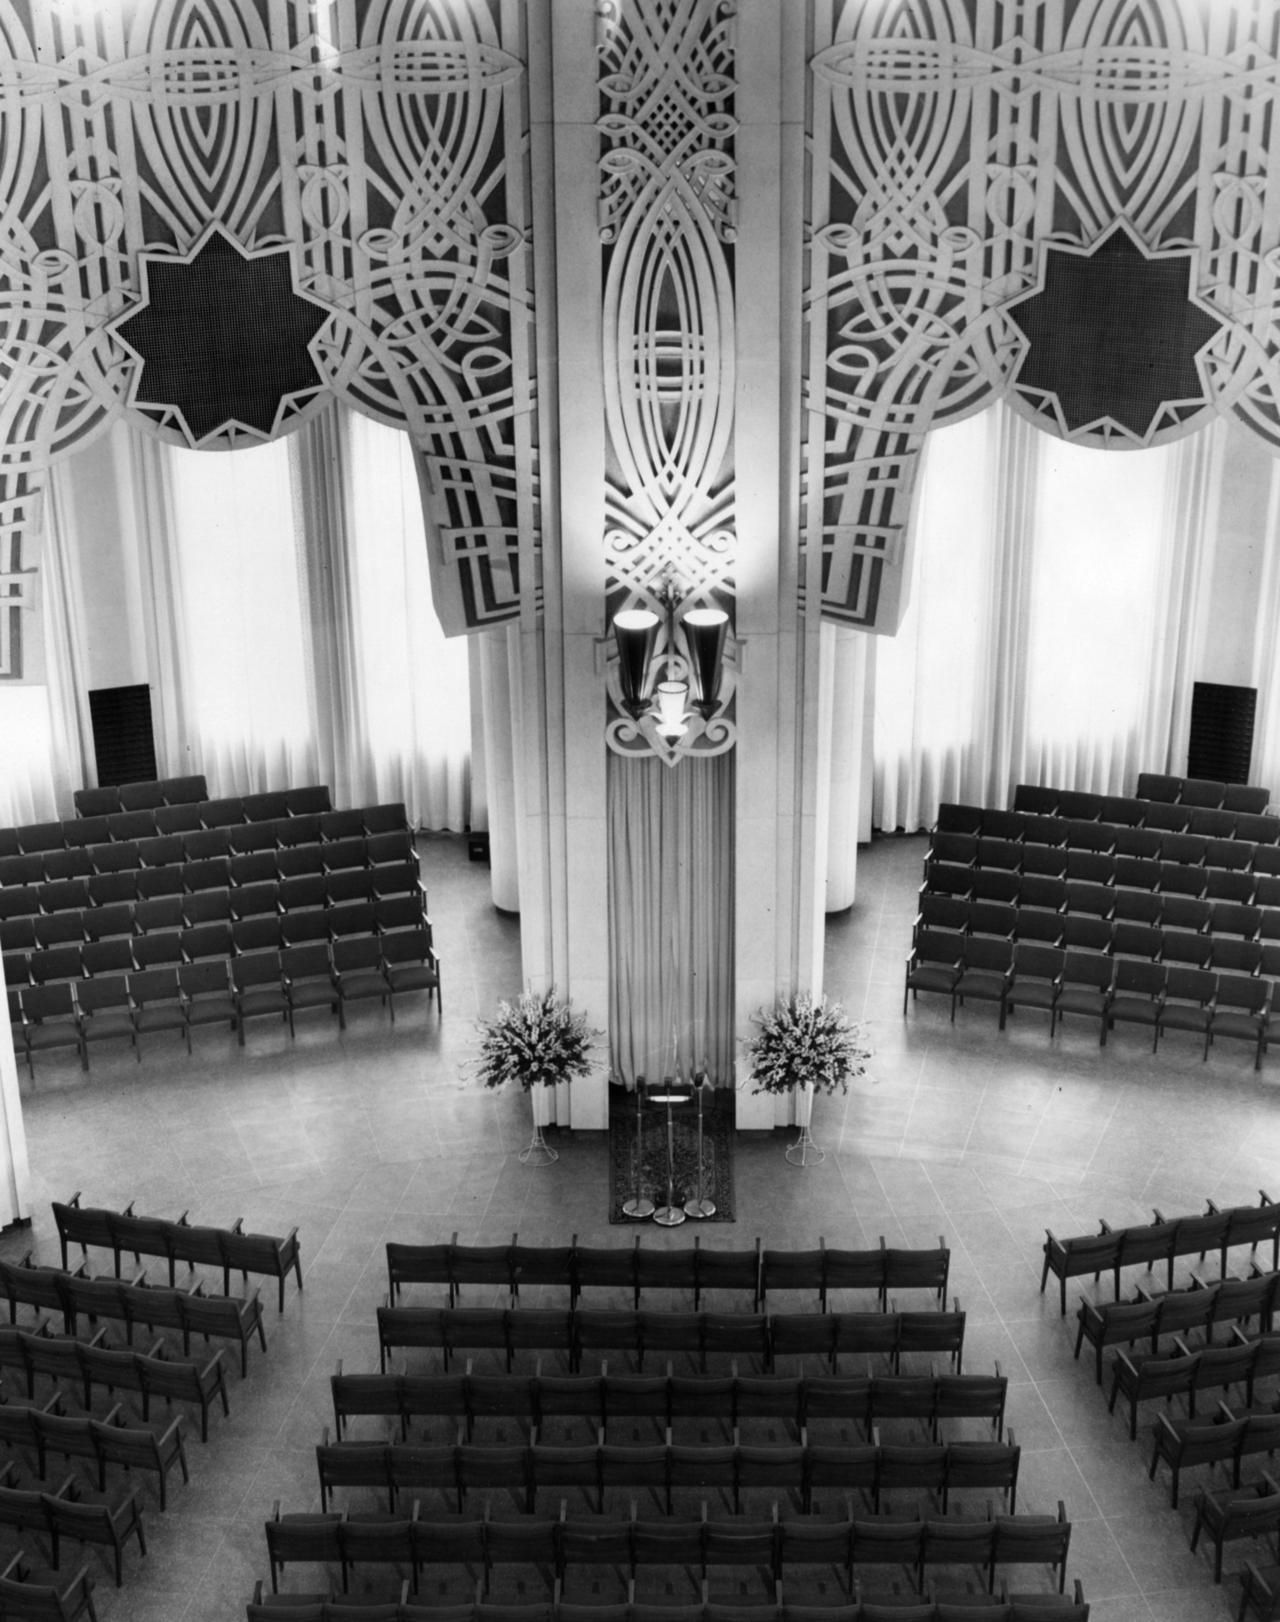 May 4, 1953 Interior view shows seating and the reading